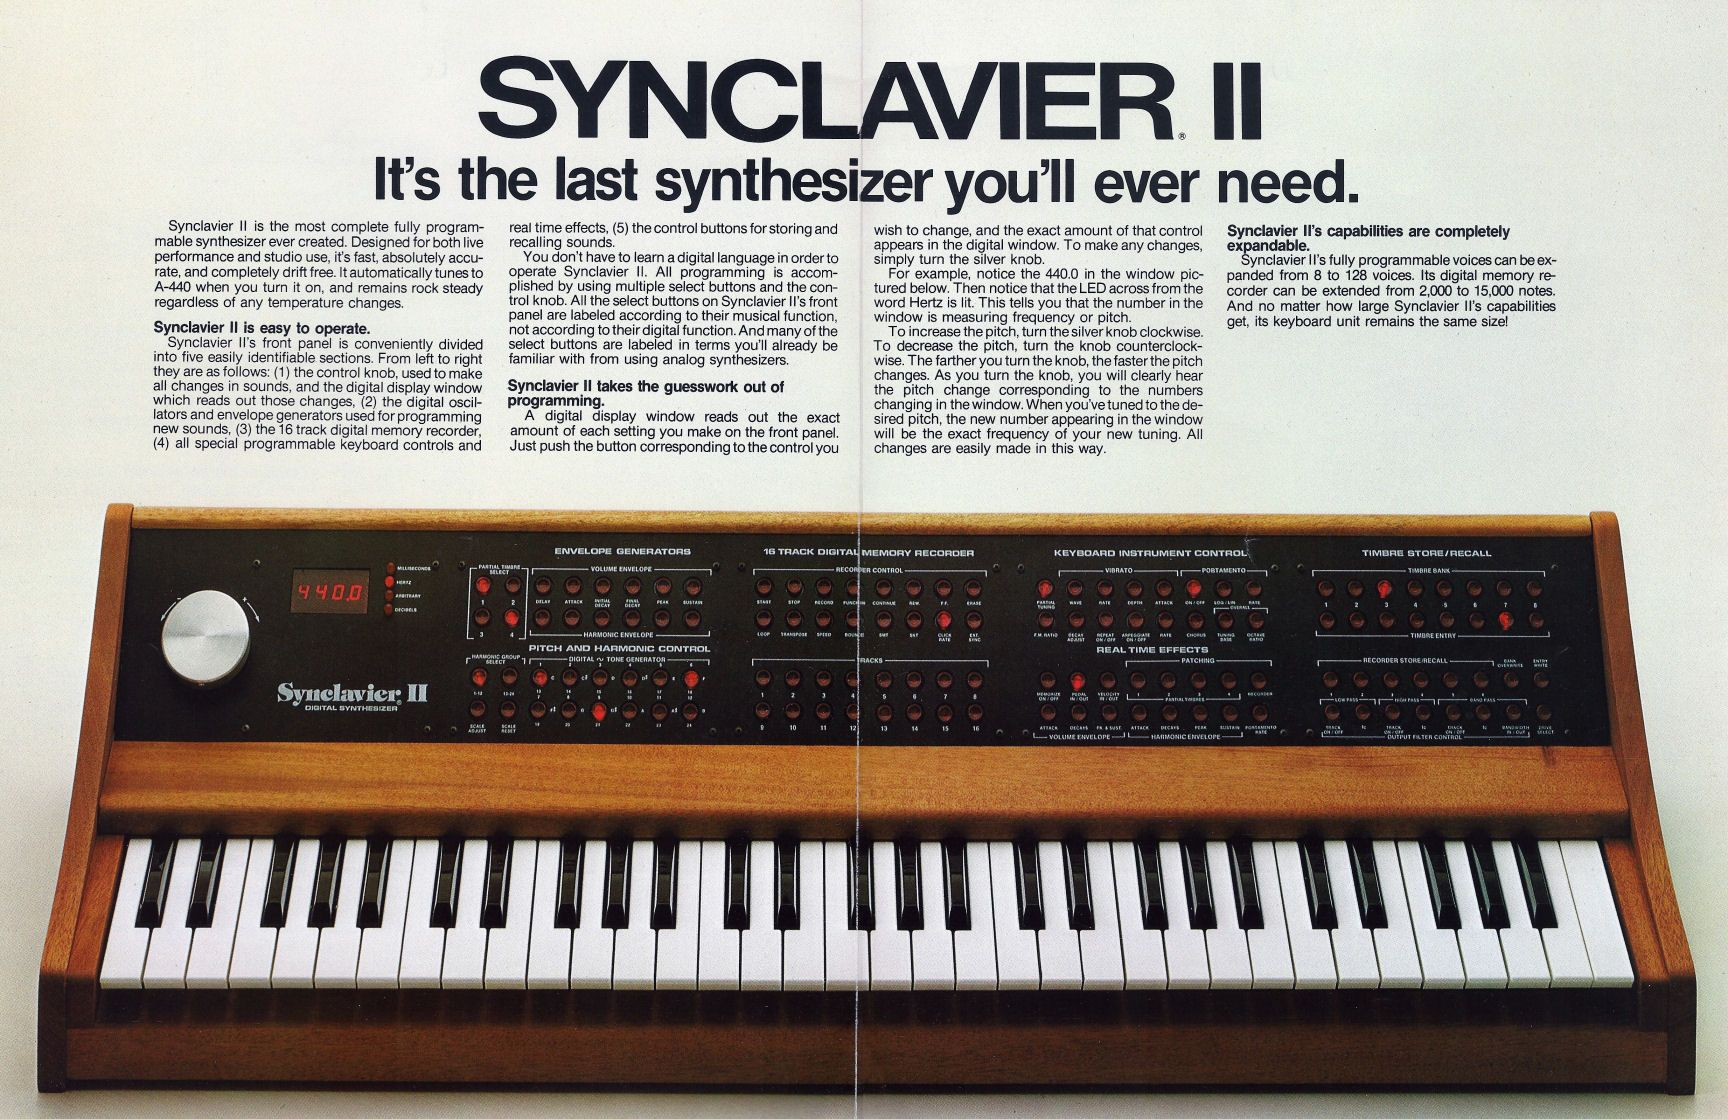 SYNCLAVIER II http://tokyosky.sub.jp/tokyosky_webmasters_blog/blogimage/SYNC4_5_small.jpg